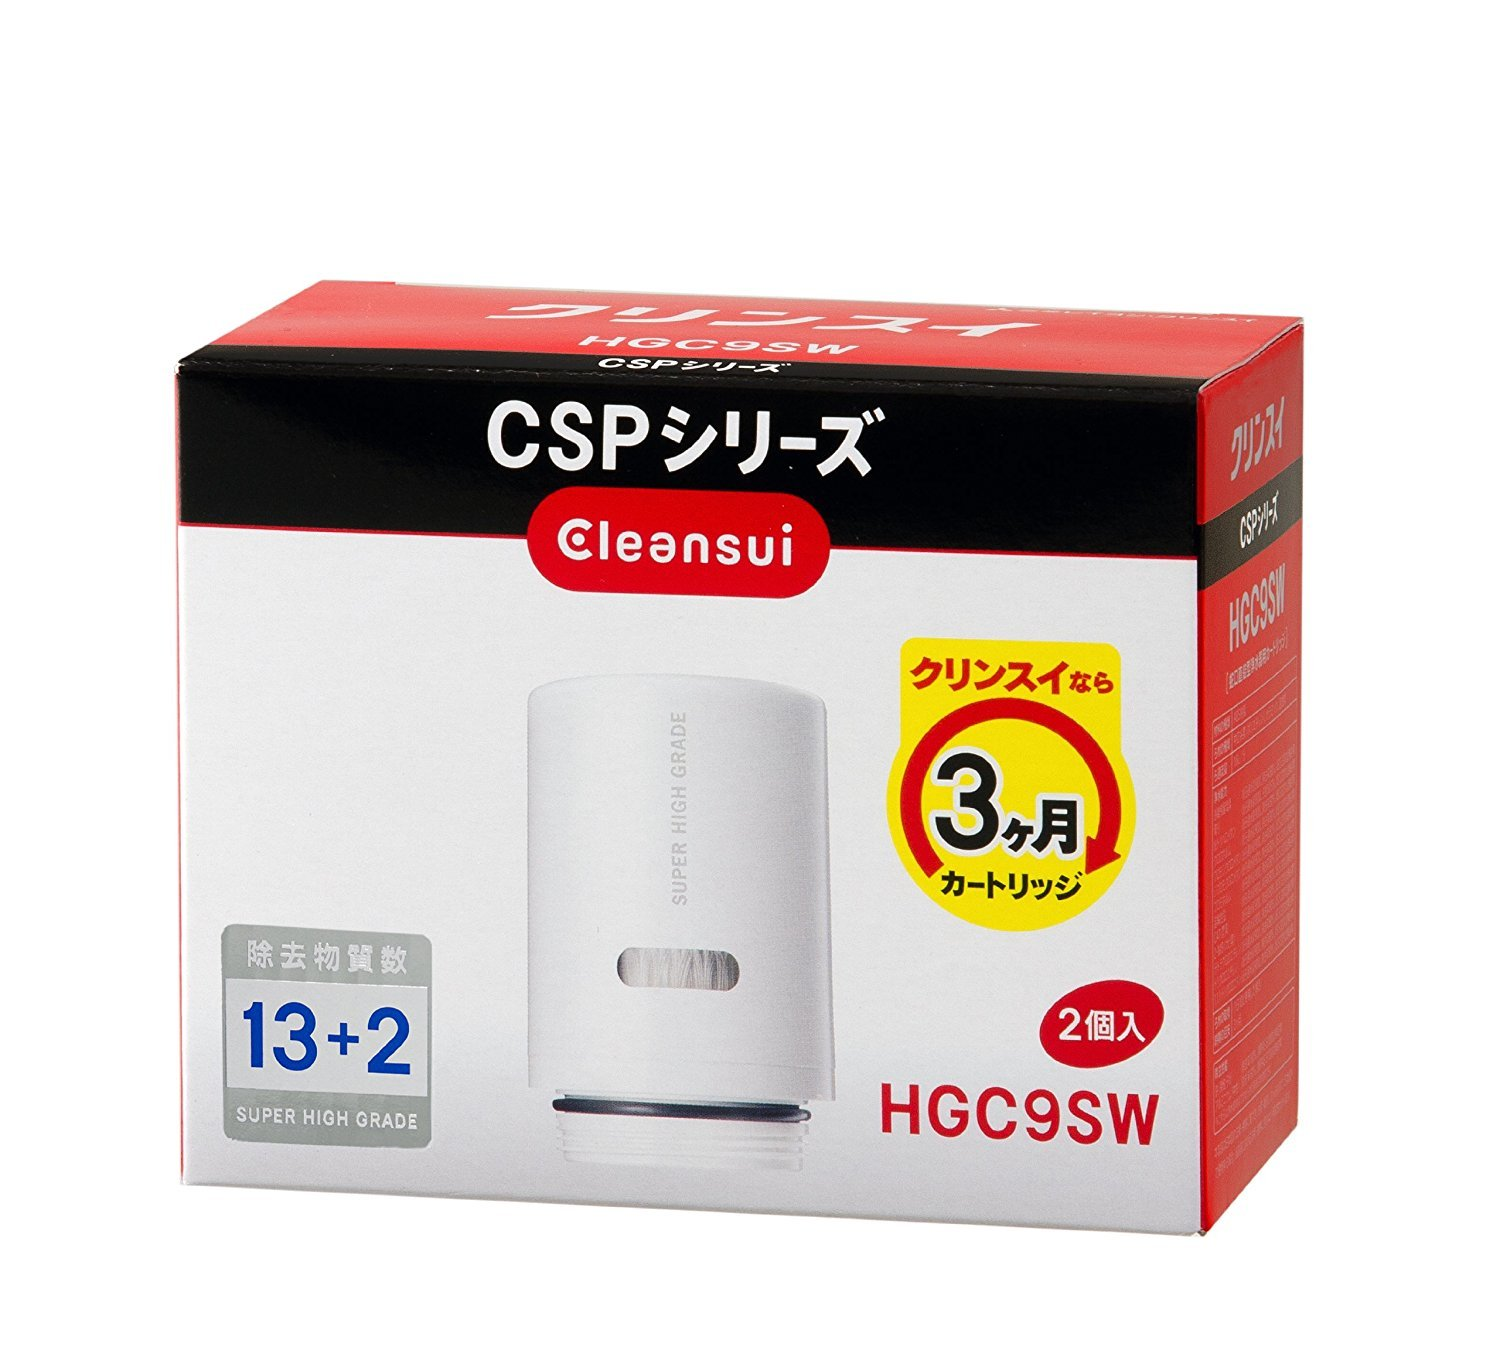 Made in JAPAN Mitsubishi Rayon HGC9SW Cleansui Super High-Grade CSP Series NEW